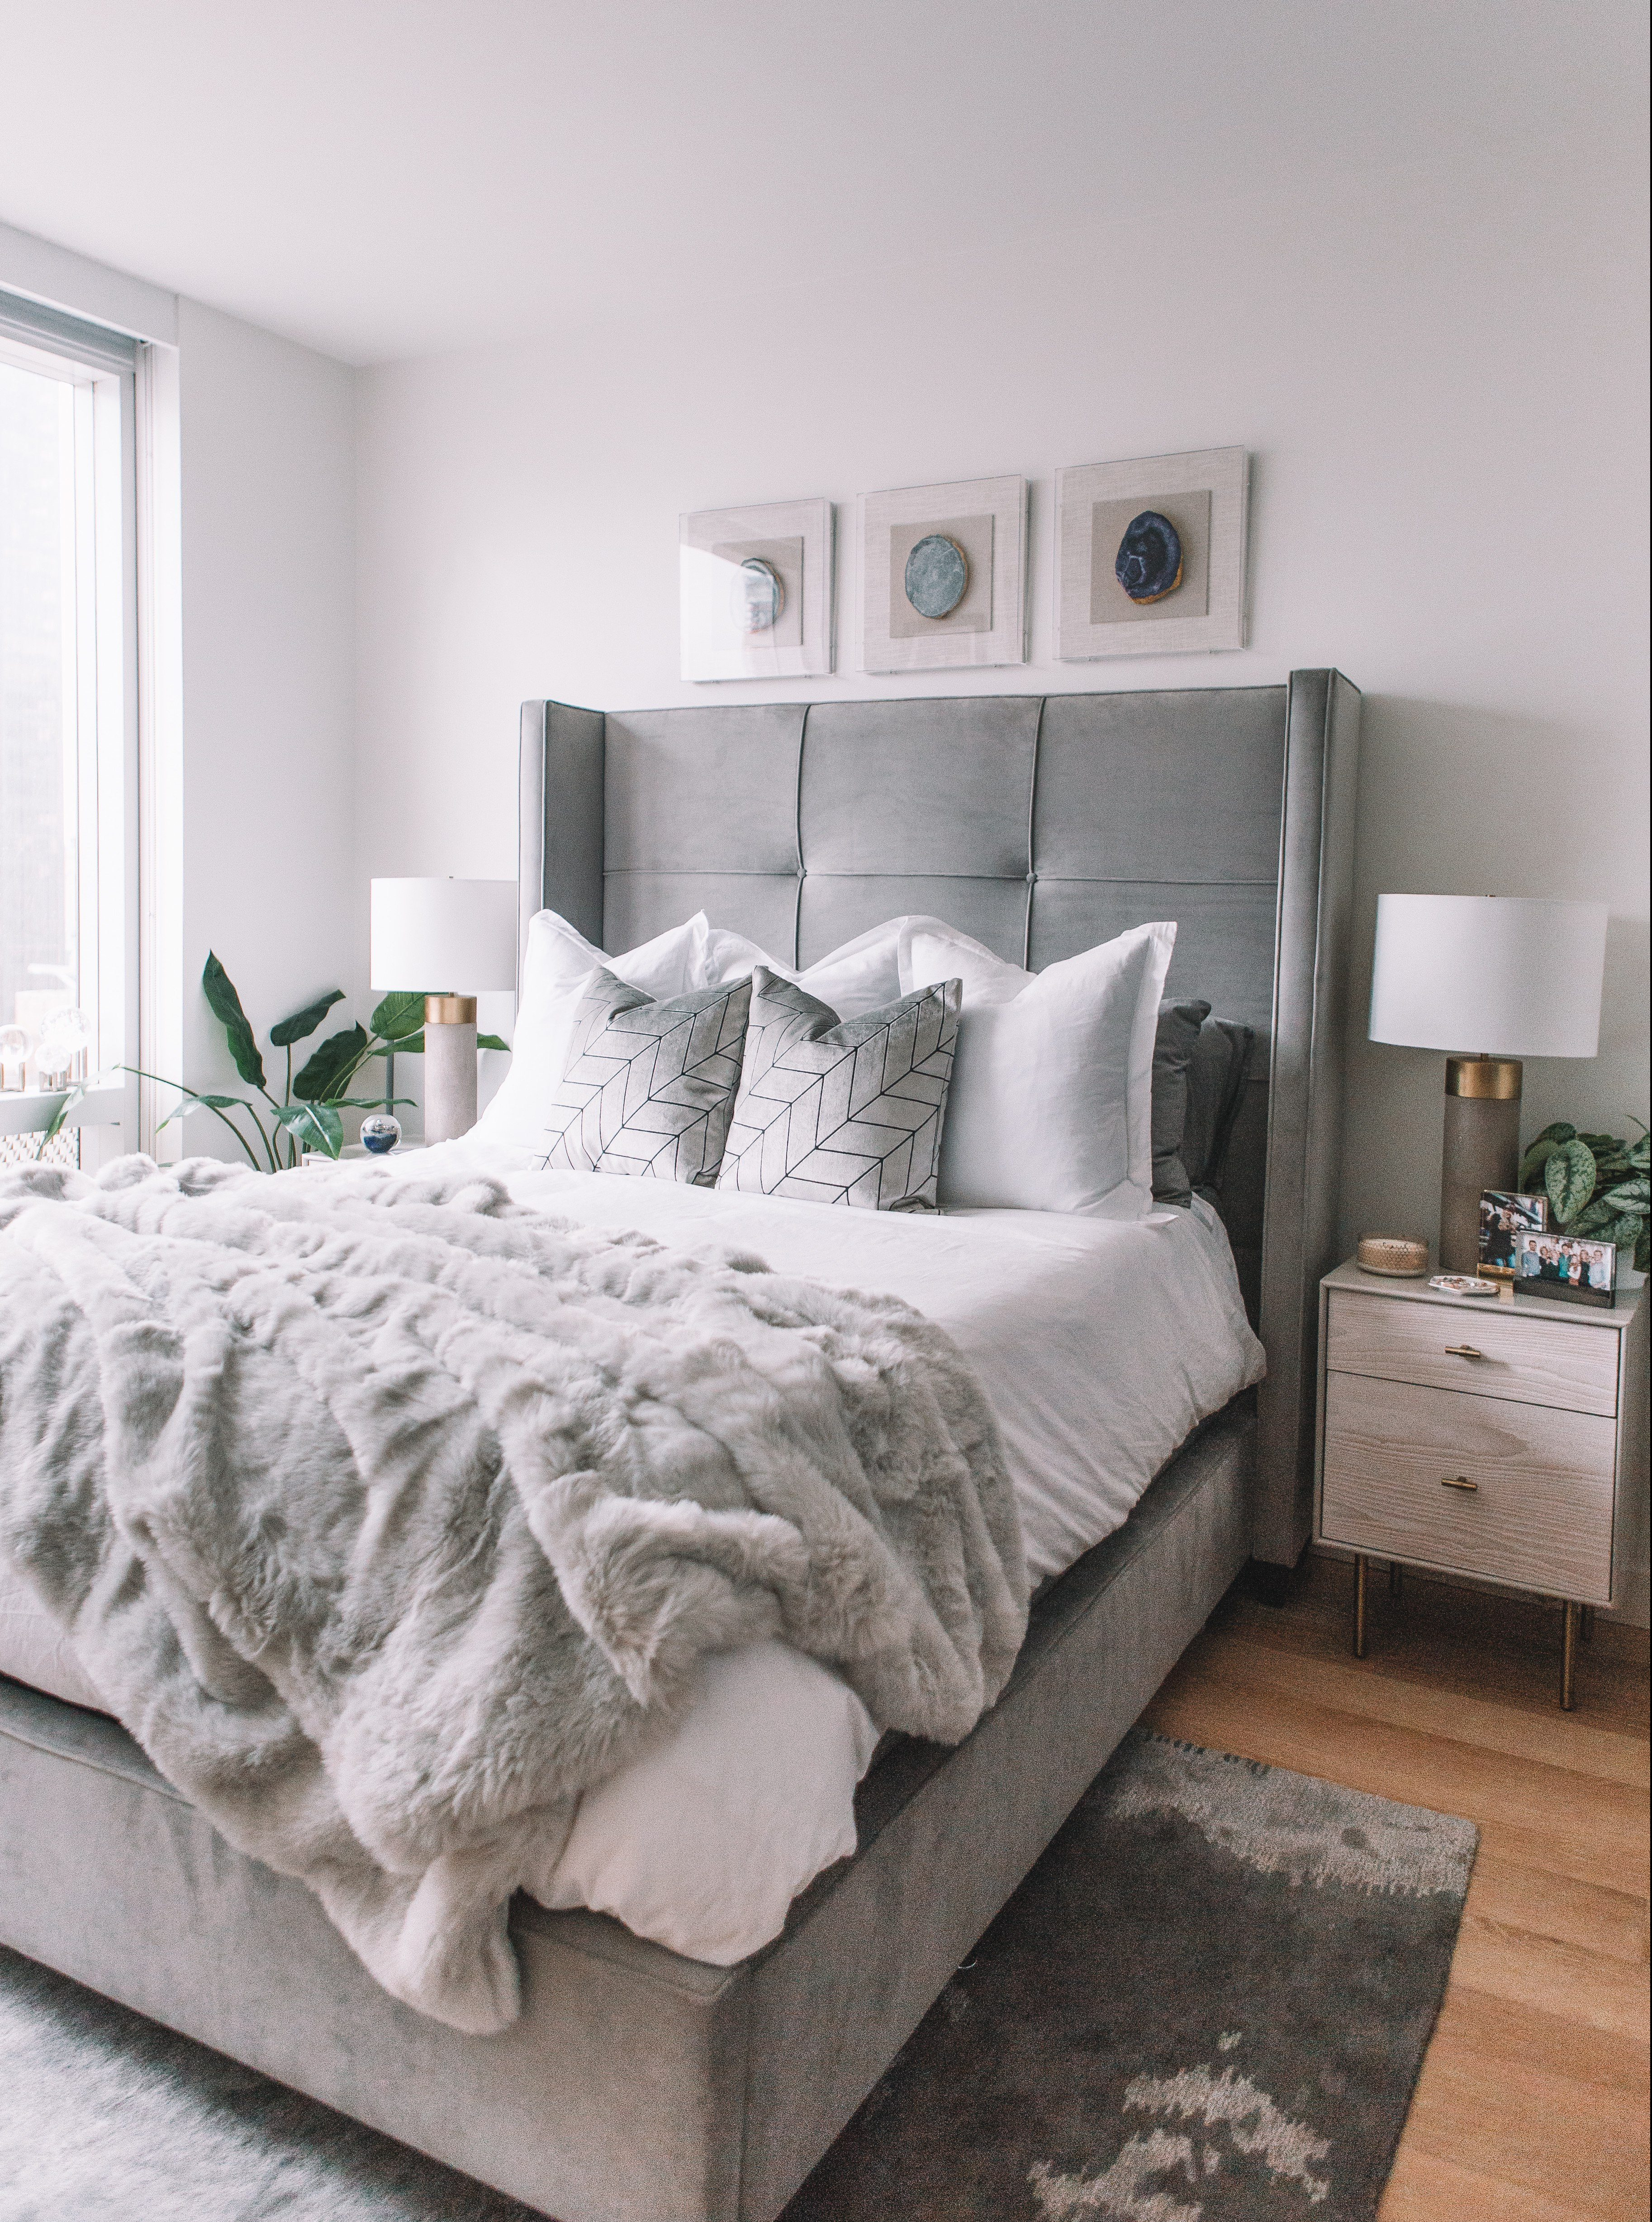 Nyc Bedroom Tour Welcome To Olivia Rink